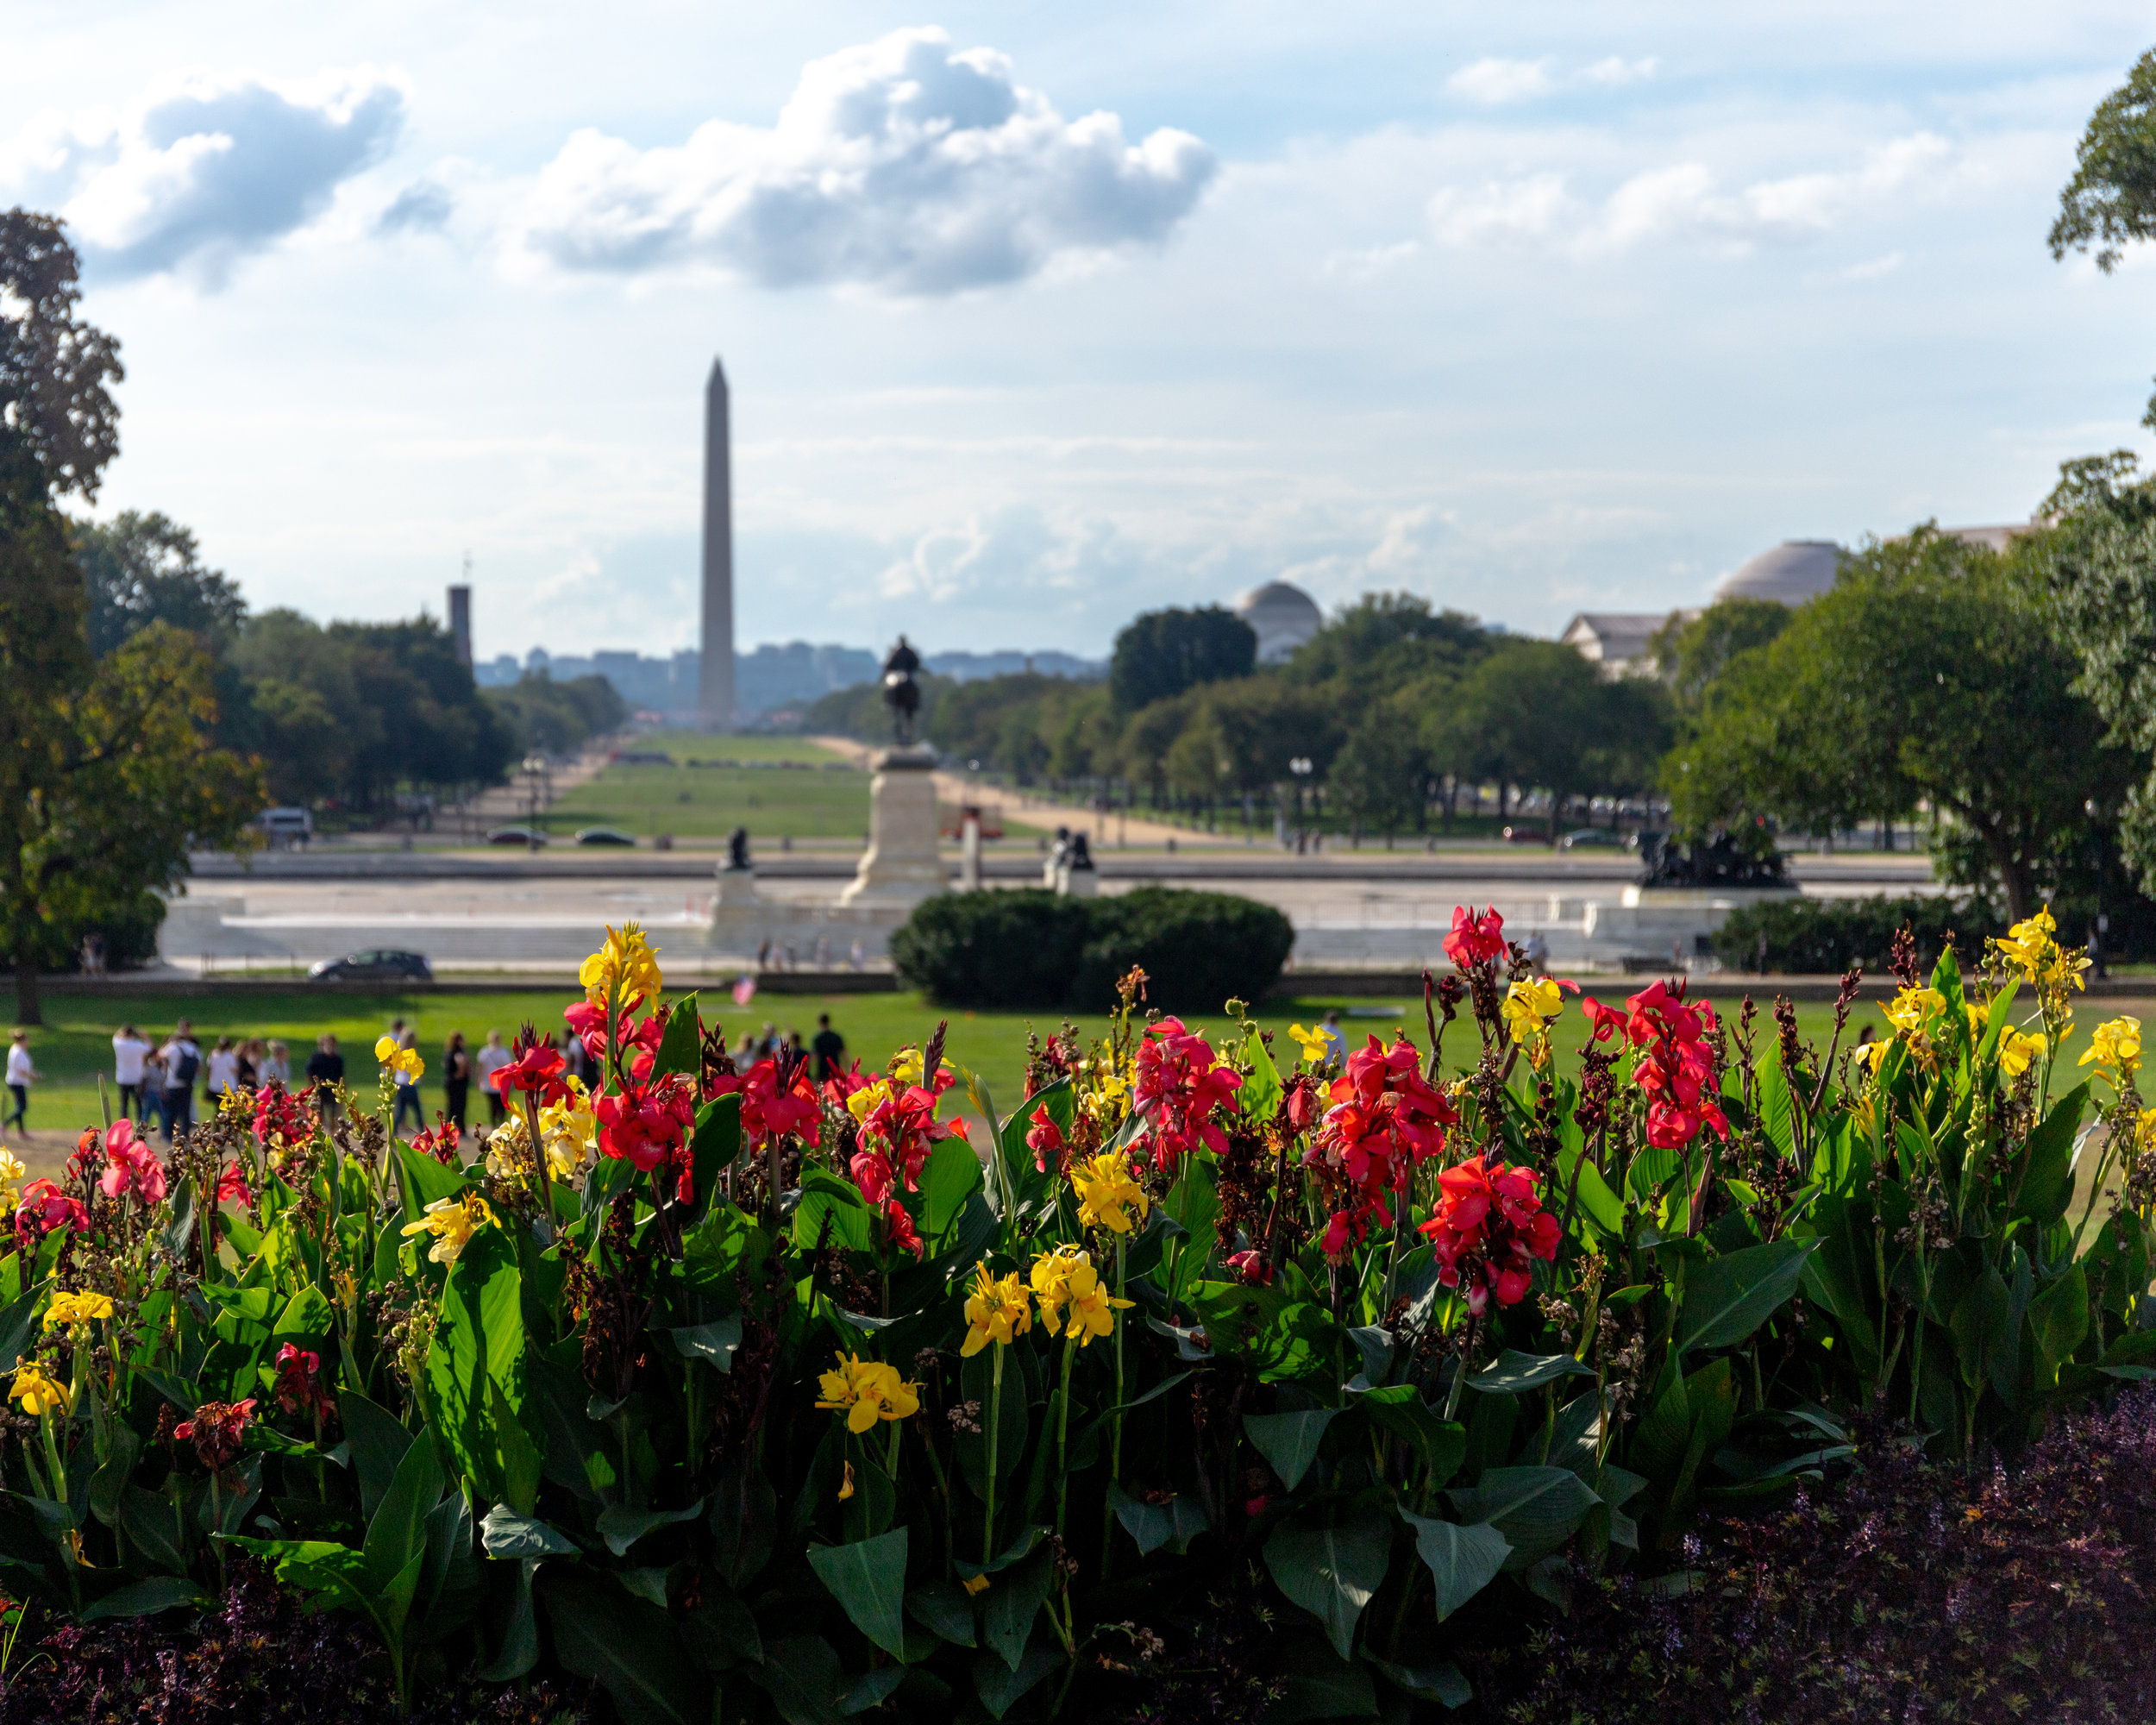 View from U.S. Capitol (Washington, D.C.)